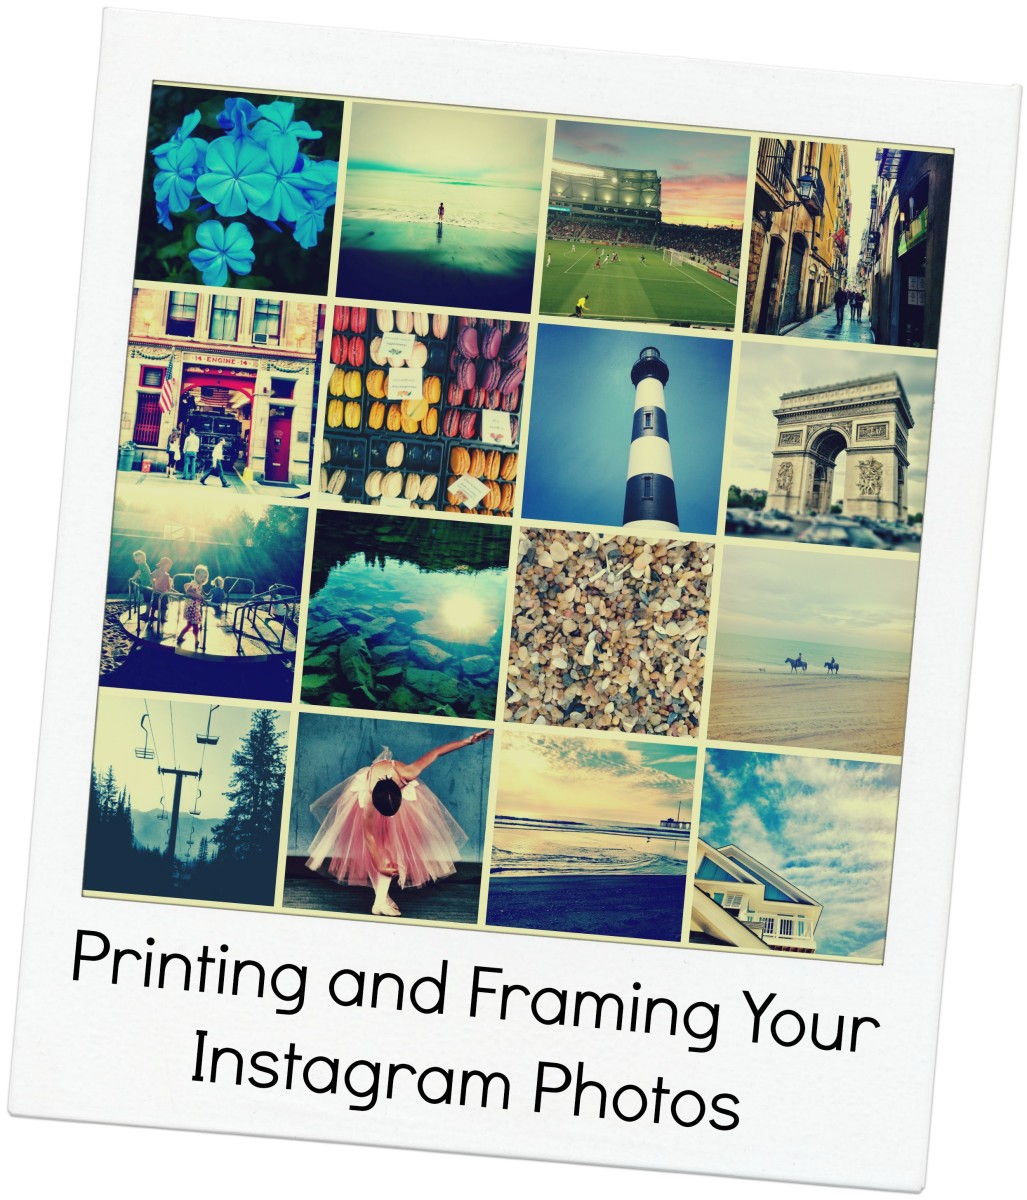 Printing and Framing Your Instagram Photos